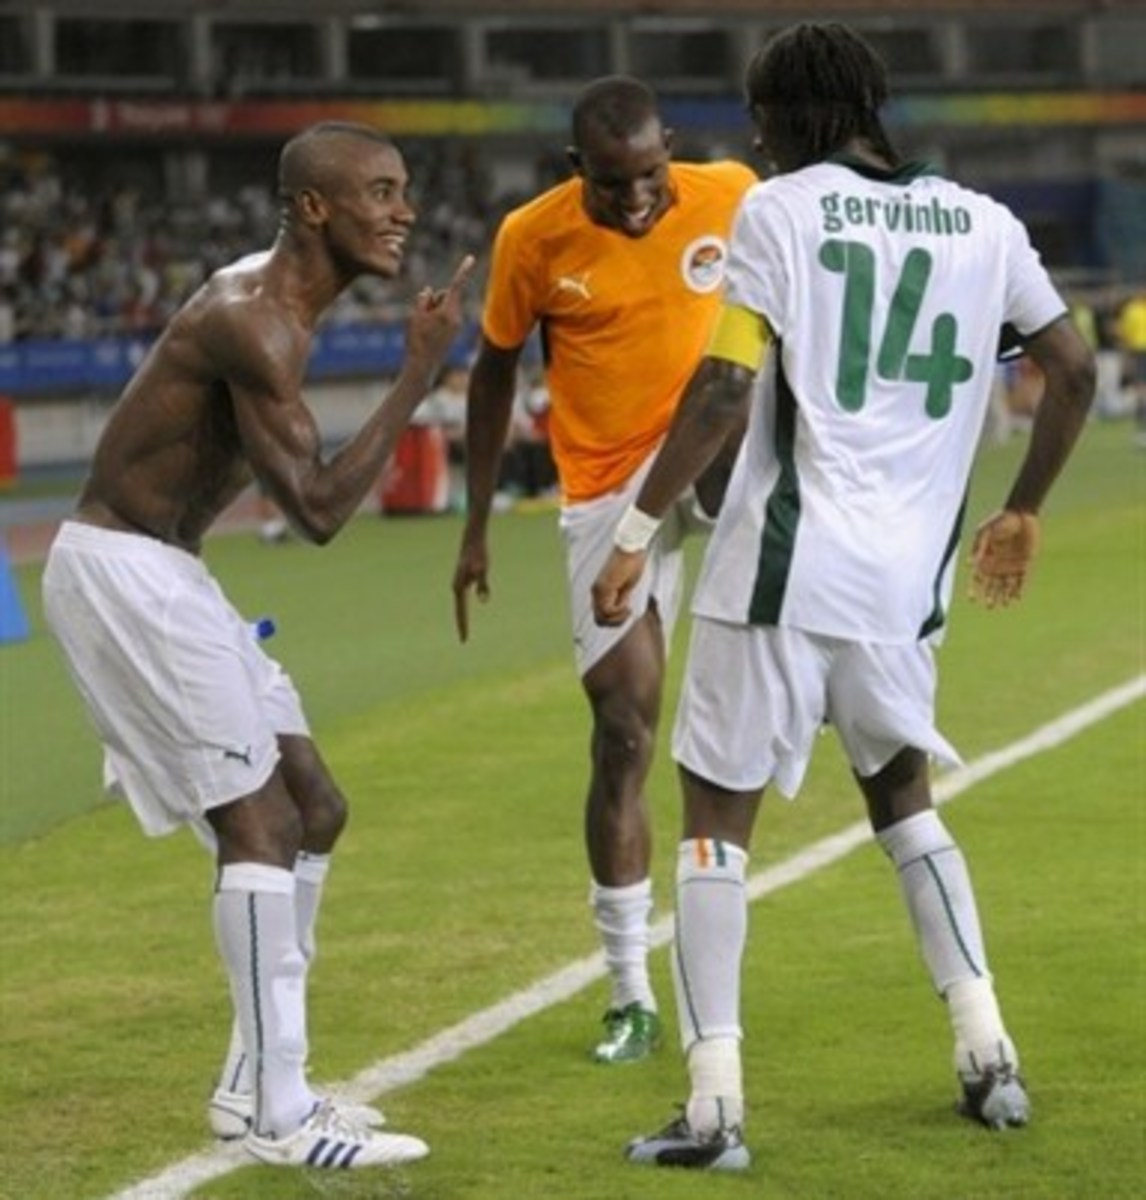 Solomon Kalou (L), Sekou Cisse (C) and Gervinho (R) celebrate for the Ivory Coast following a goal by Gervinho late in its match against Serbia in Shanghai on Aug. 10, 2008. The Ivory Coast won 4-2